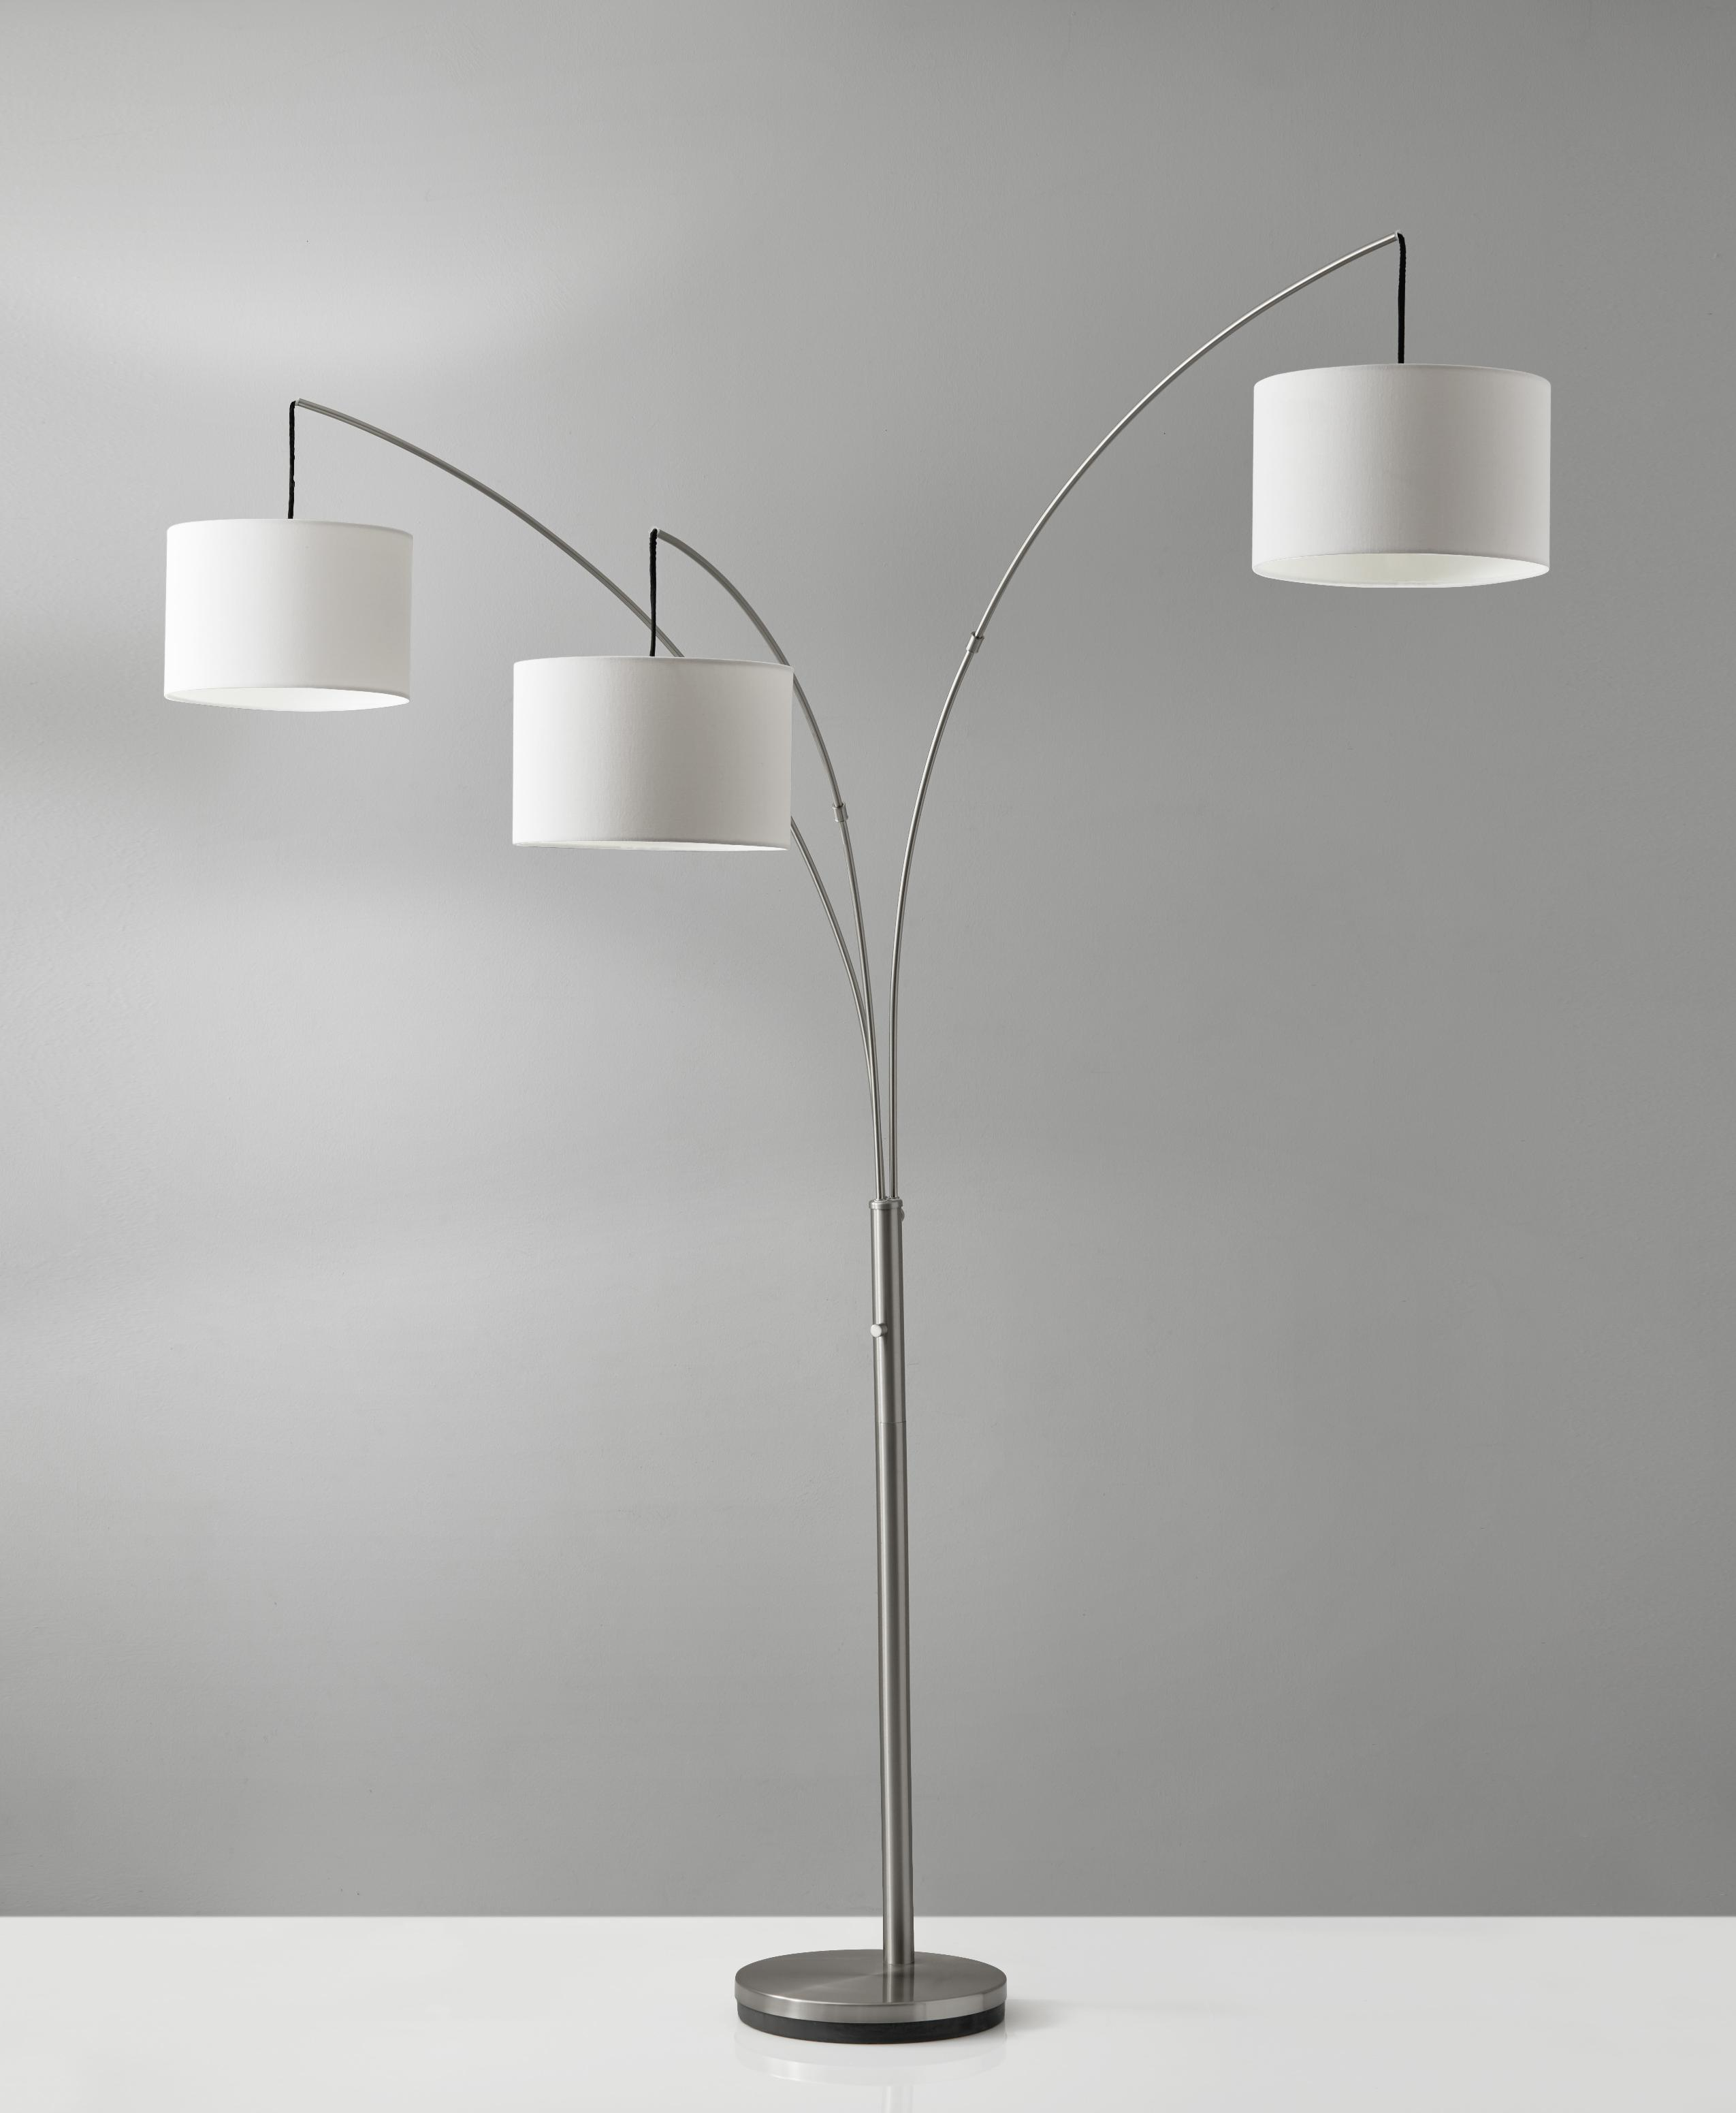 Trinity Arc Lamp (Brushed Steel) By Adesso Furniture (Adesso Furniture)